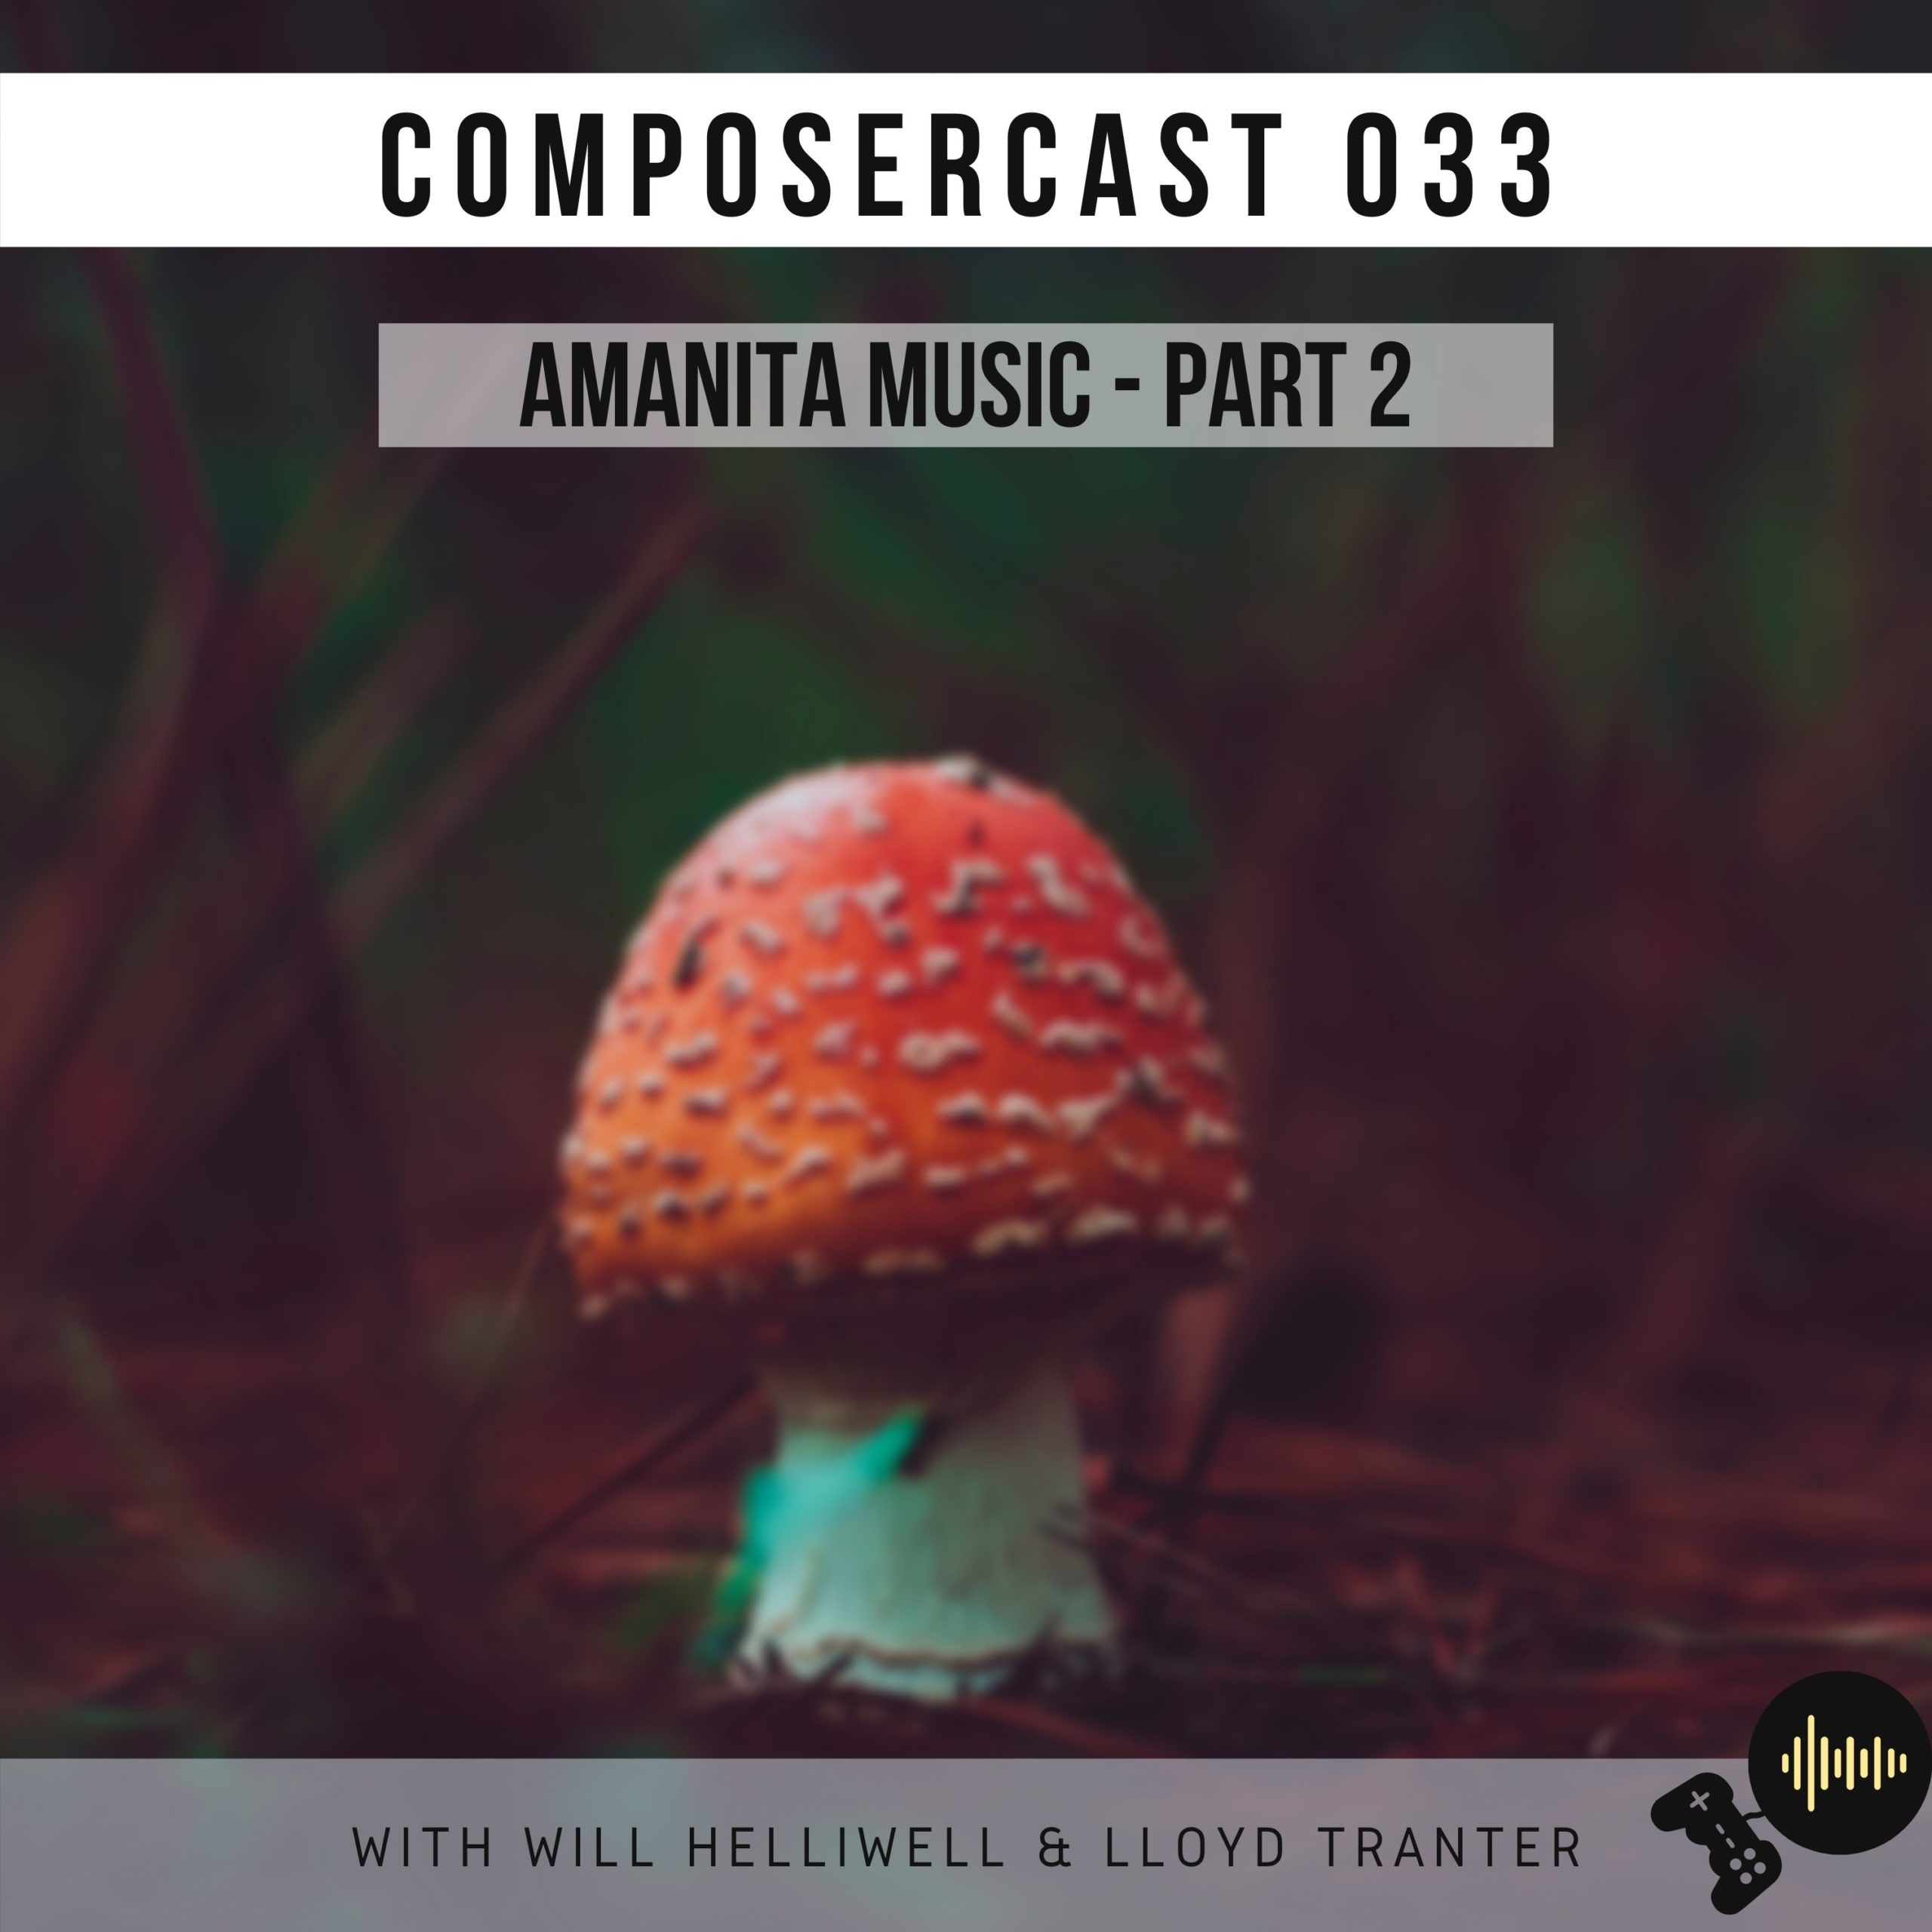 Copy of ComposerCast 032 part 2